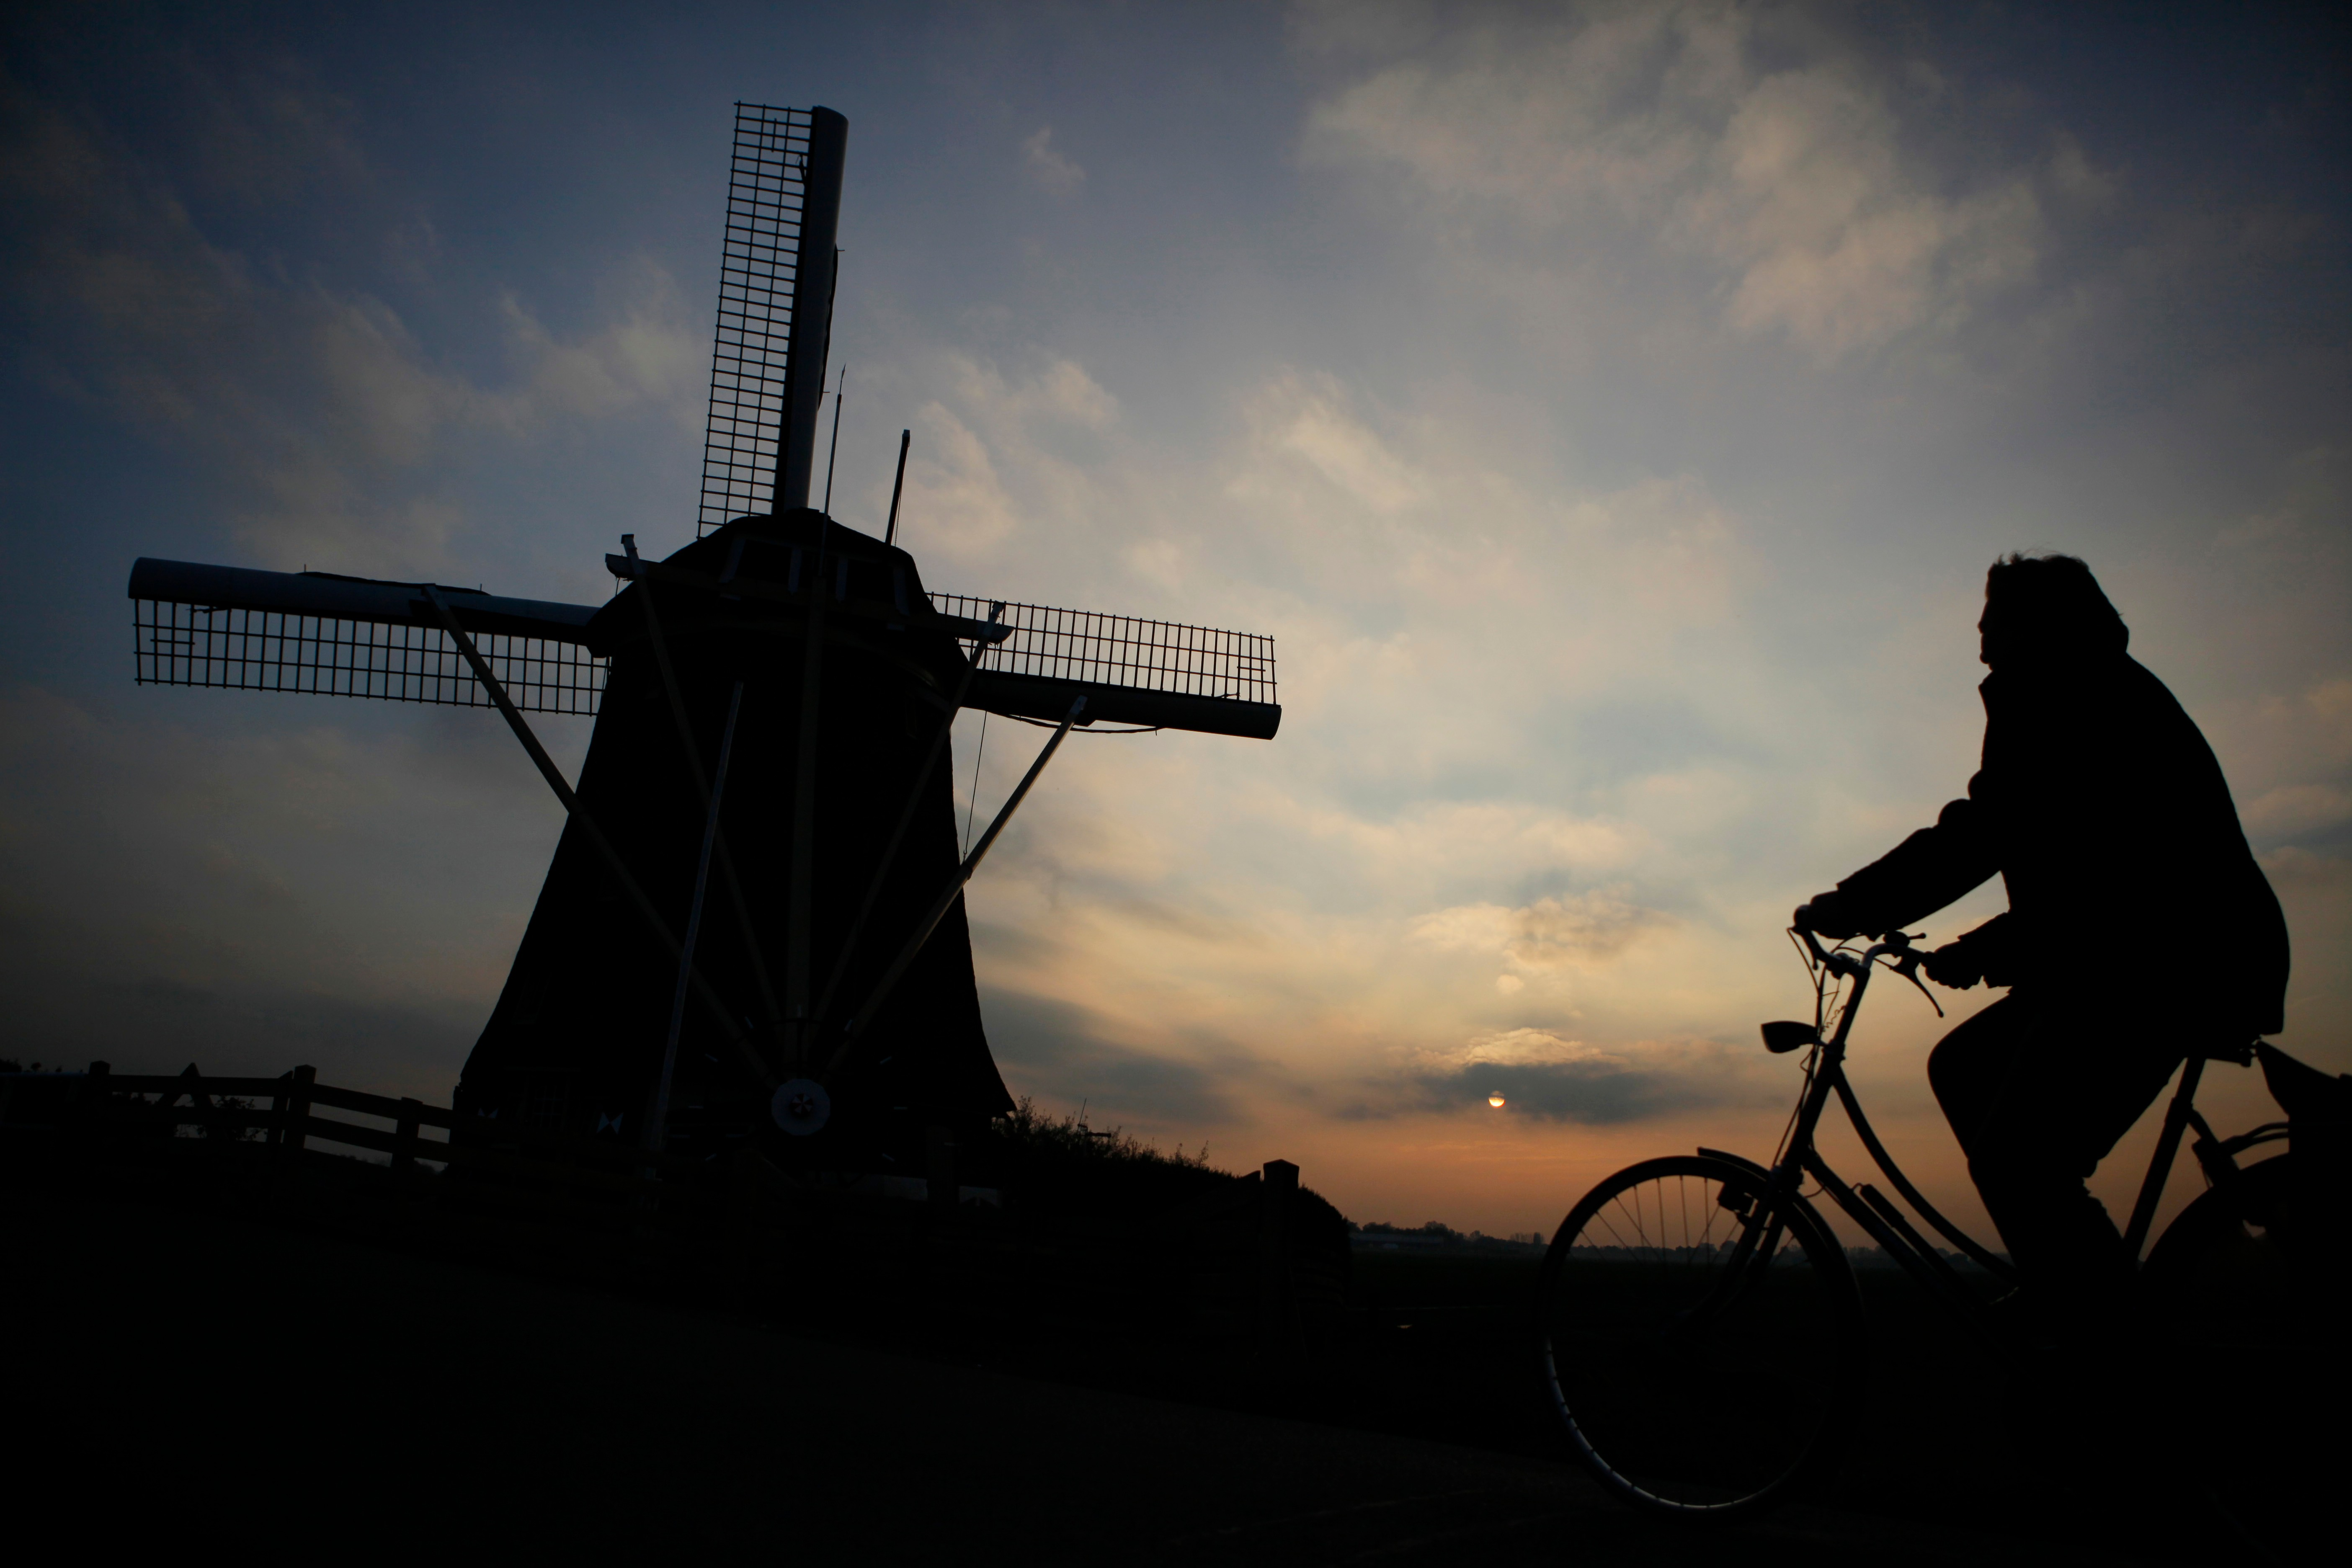 The traditional Dutch bike is famous worldwide, but e-bikes are becoming more popular in the Netherlands